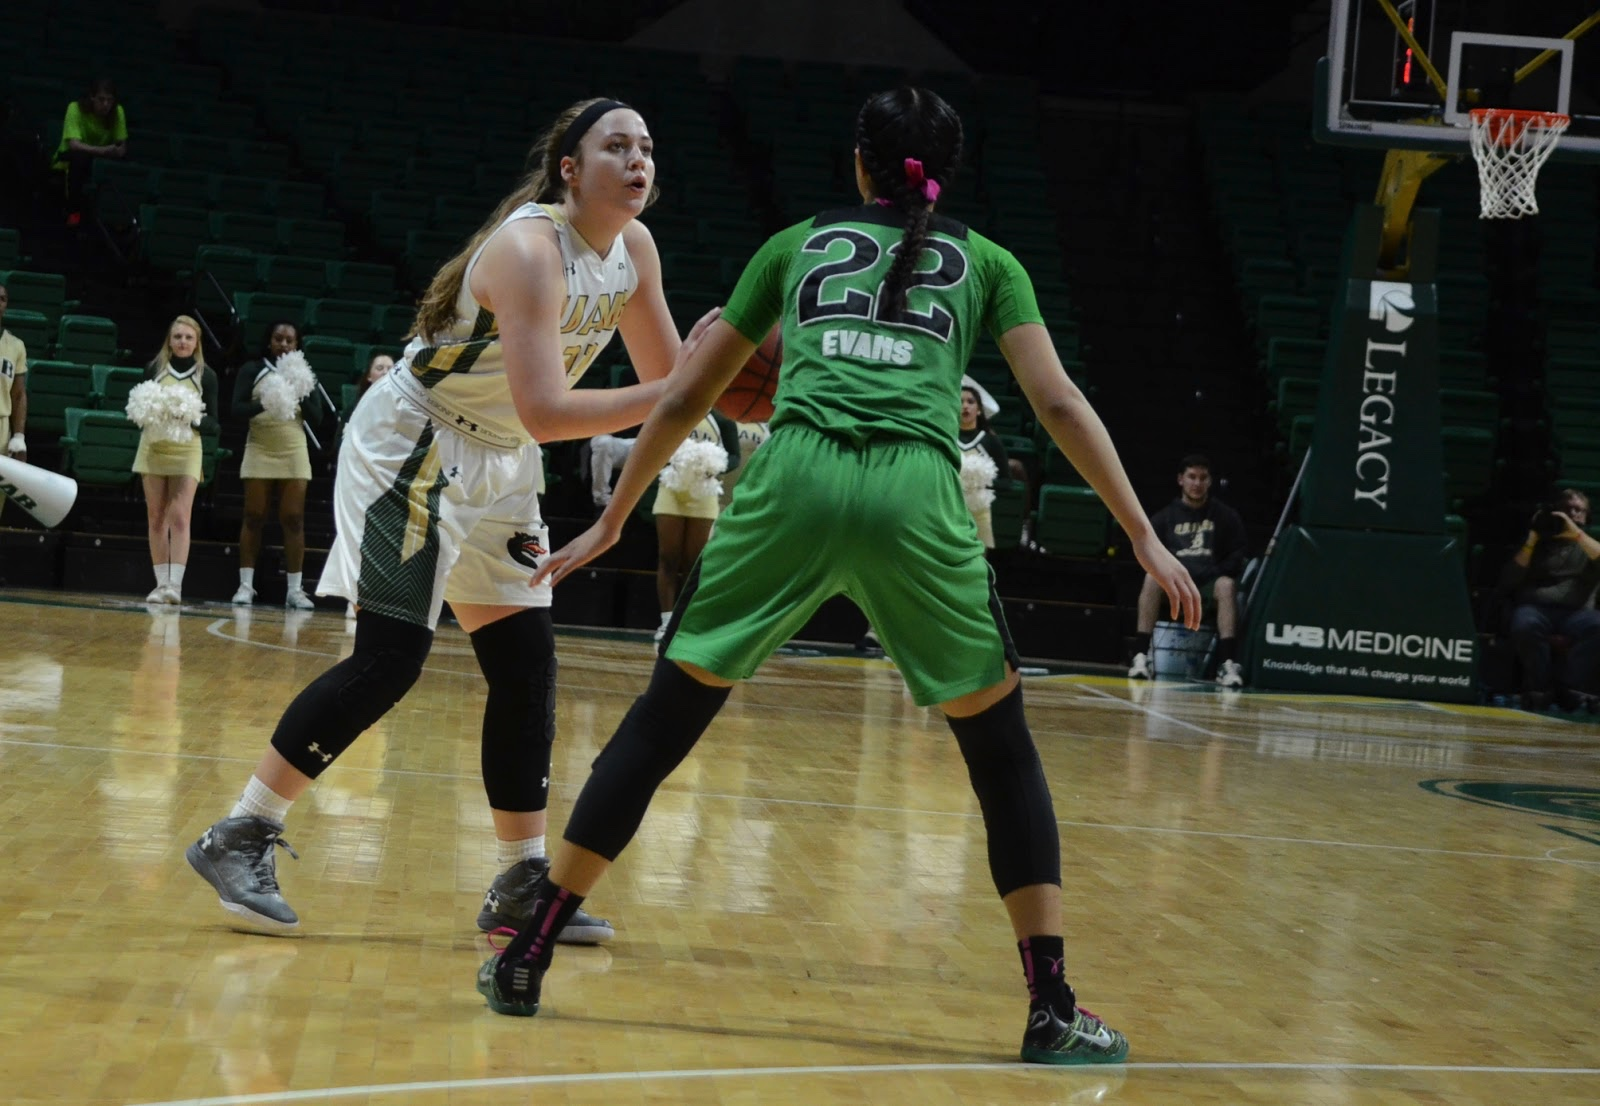 Freshman forward Rachael Childress was named C-USA's freshman of the year. Photo by Ian Keel/Photo Editor